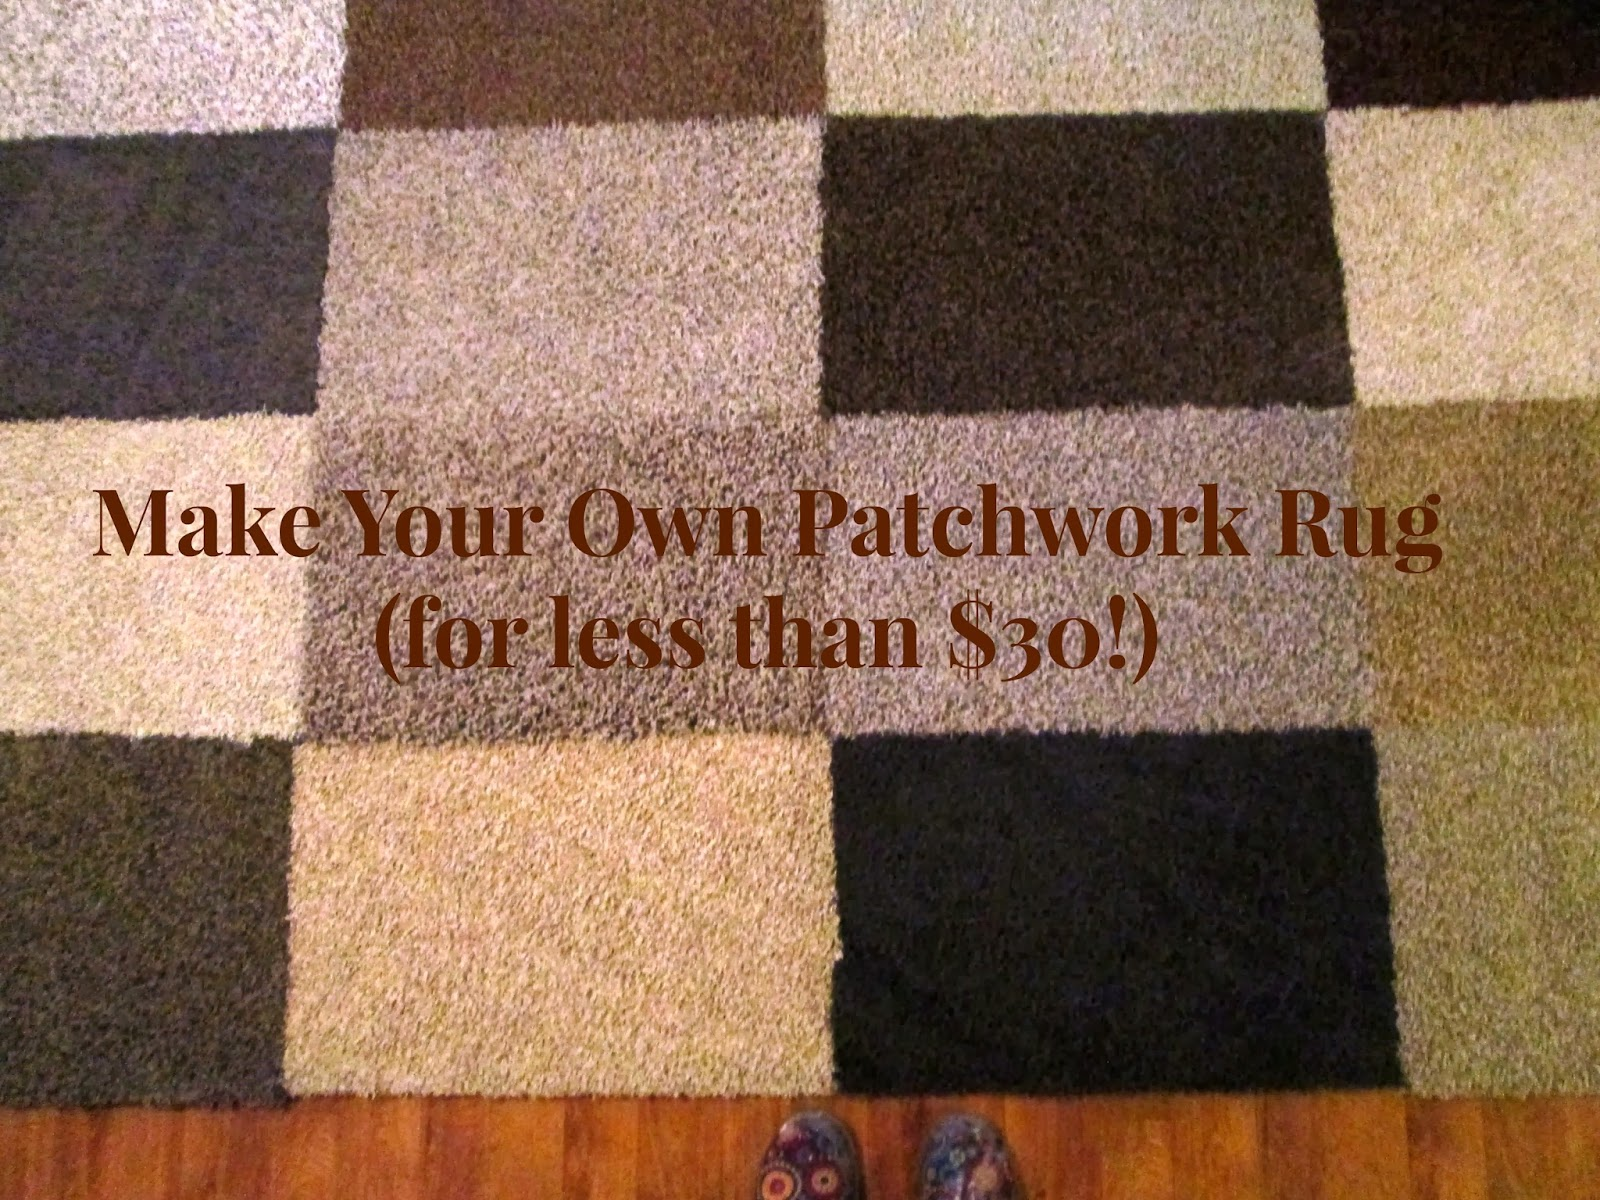 Make Your Own Patchwork Rug For Less Than 30